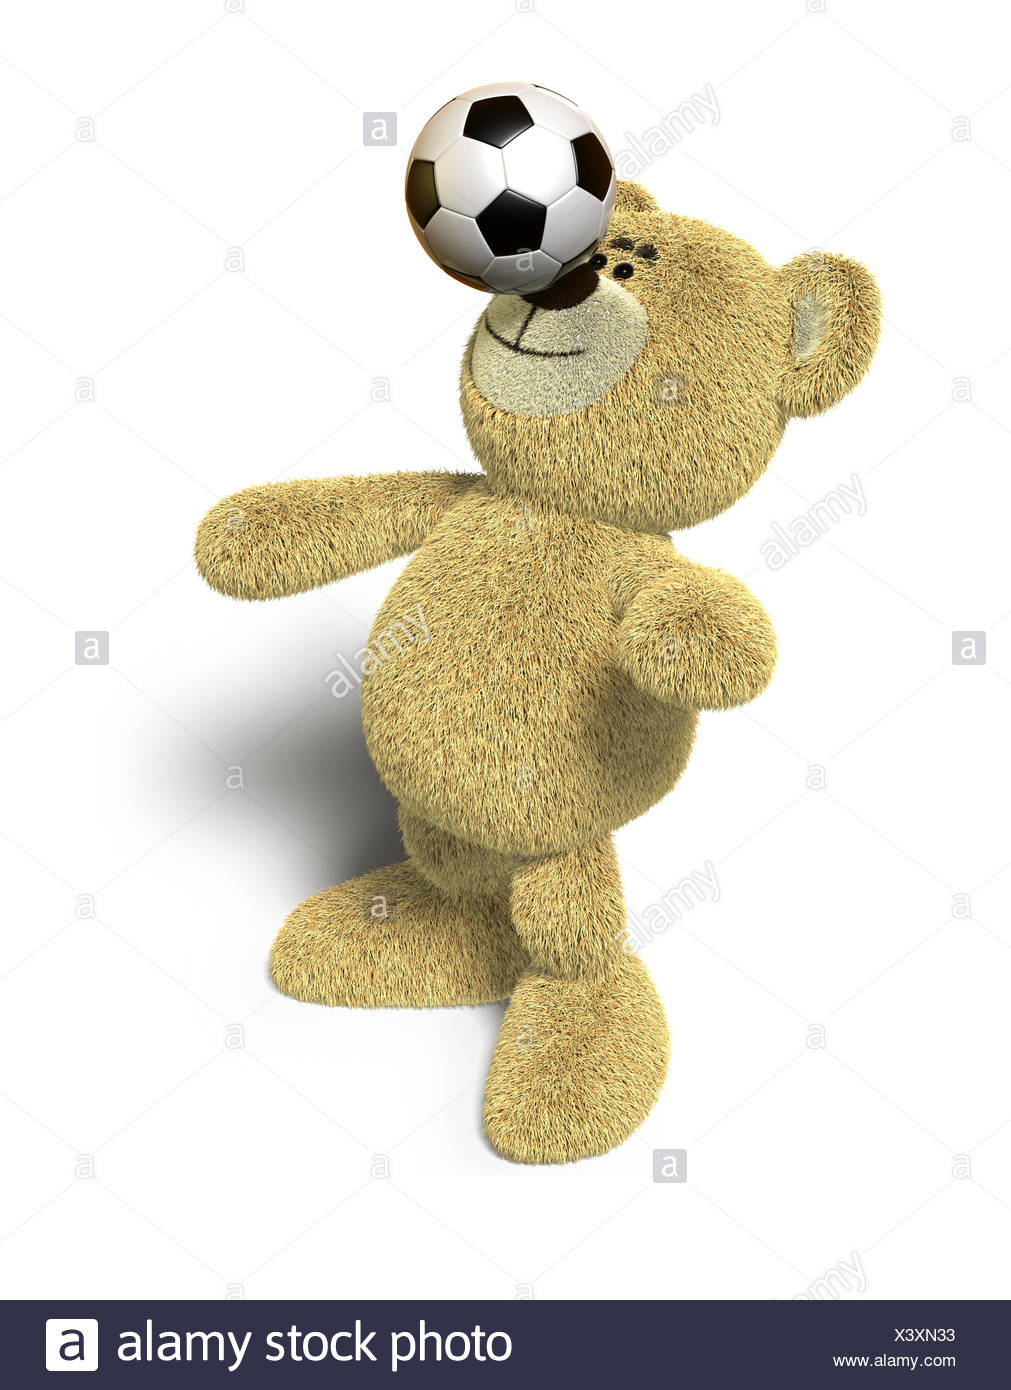 Nhi Bear balances soccer ball on nose - Stock Image